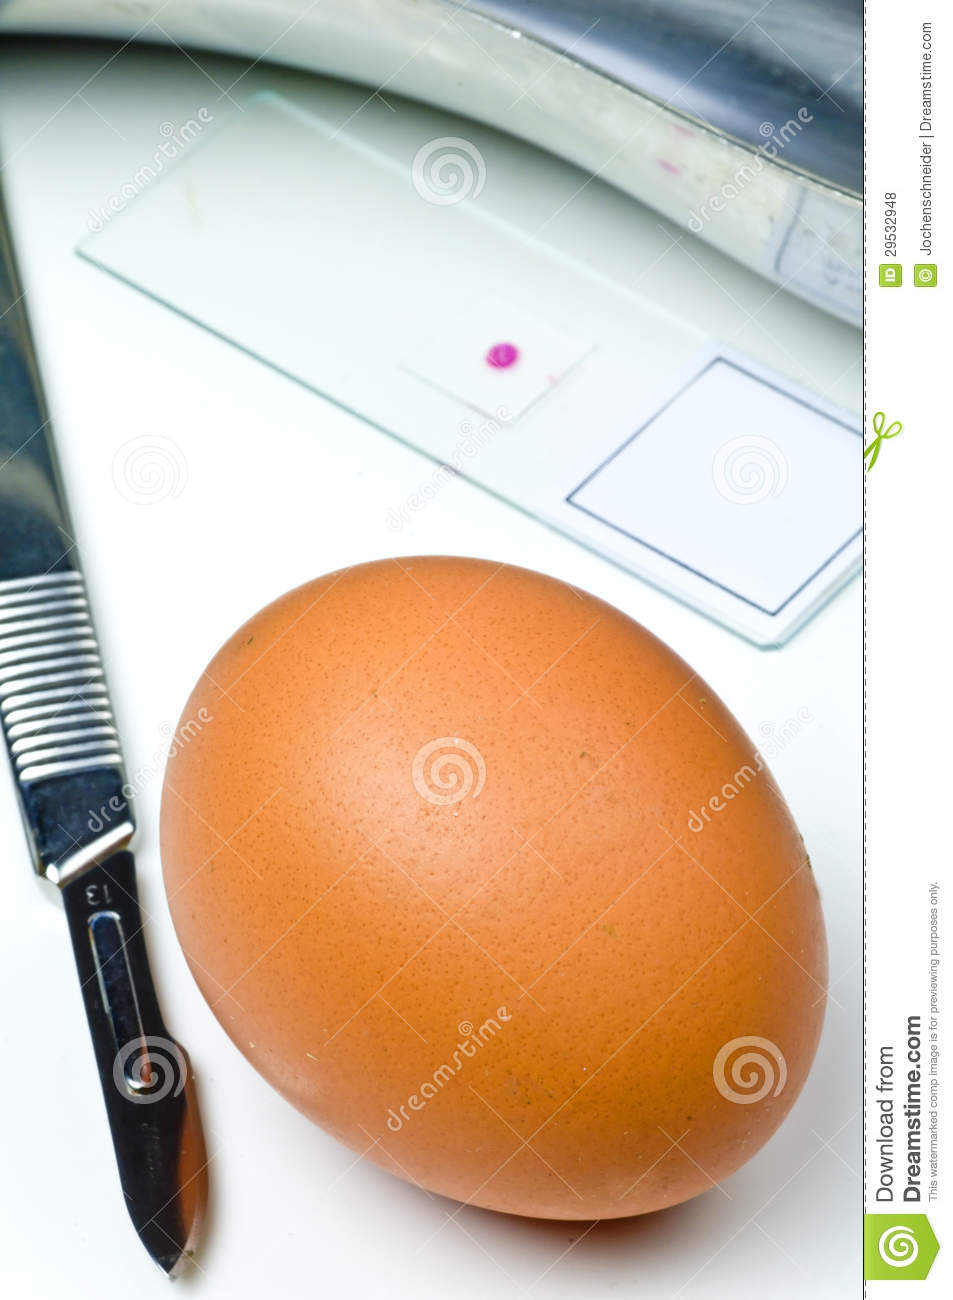 Examination of eggs